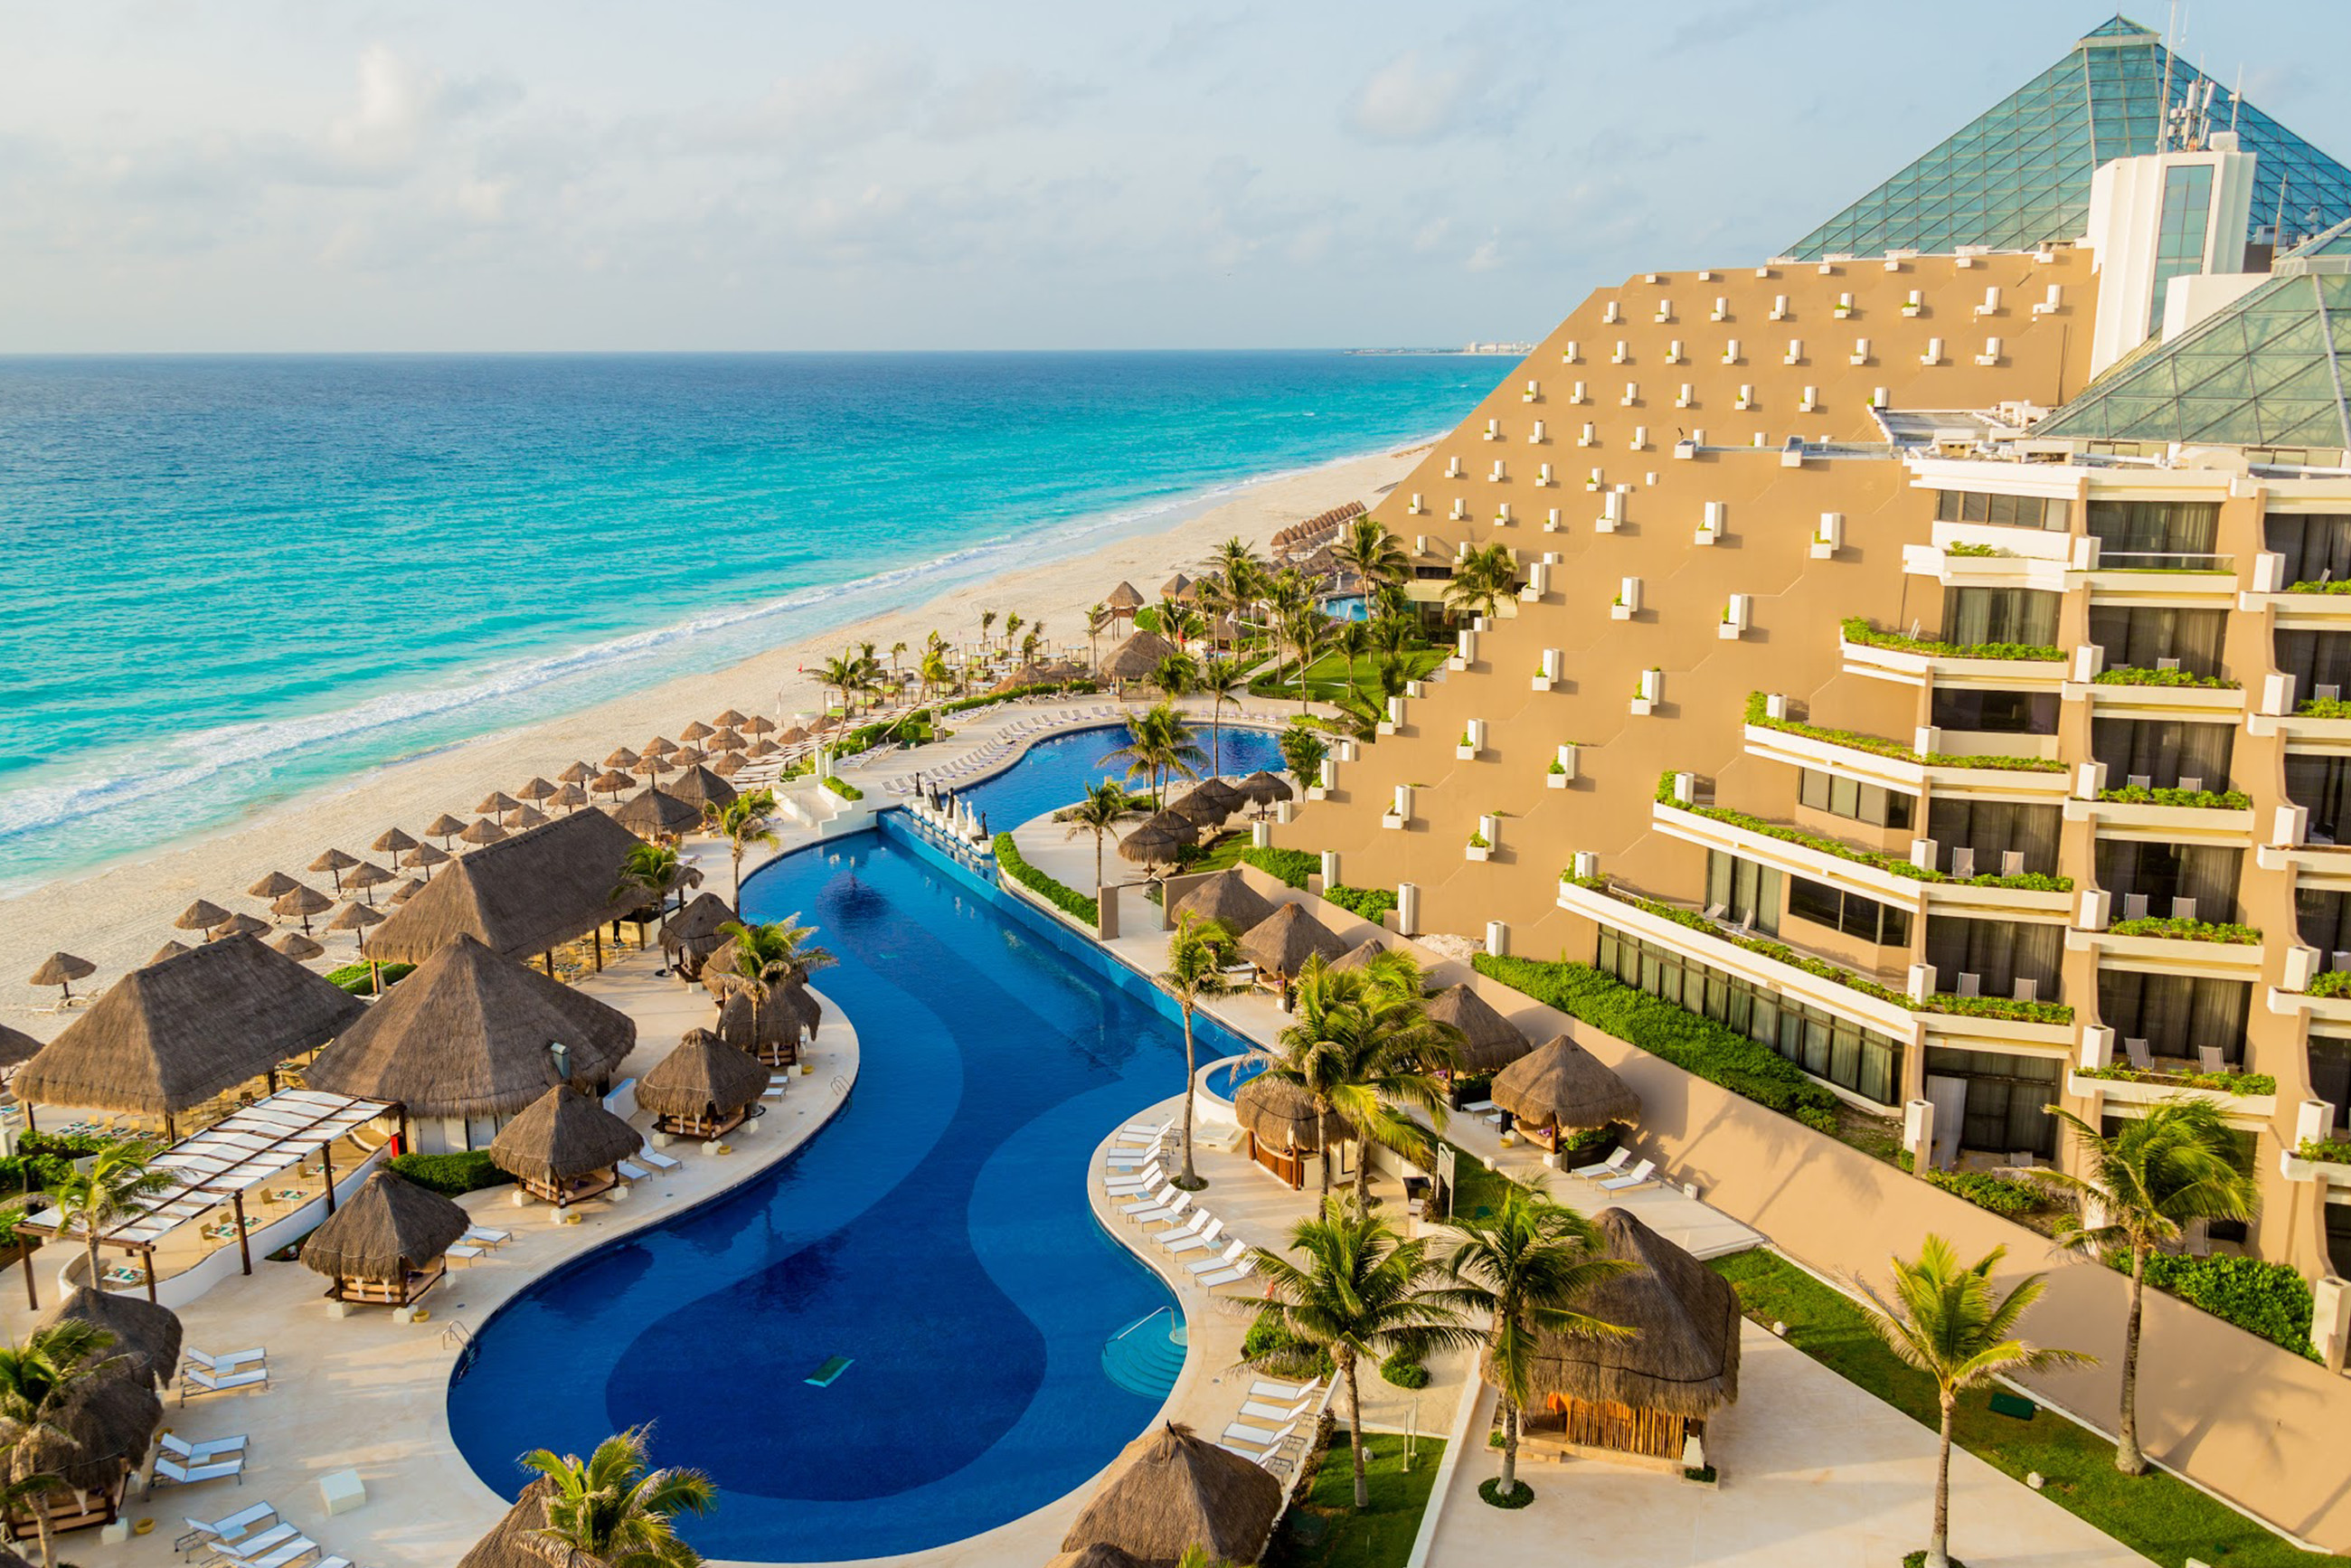 https://bubo.sk/uploads/galleries/3464/paradisus-cancun-5.jpg